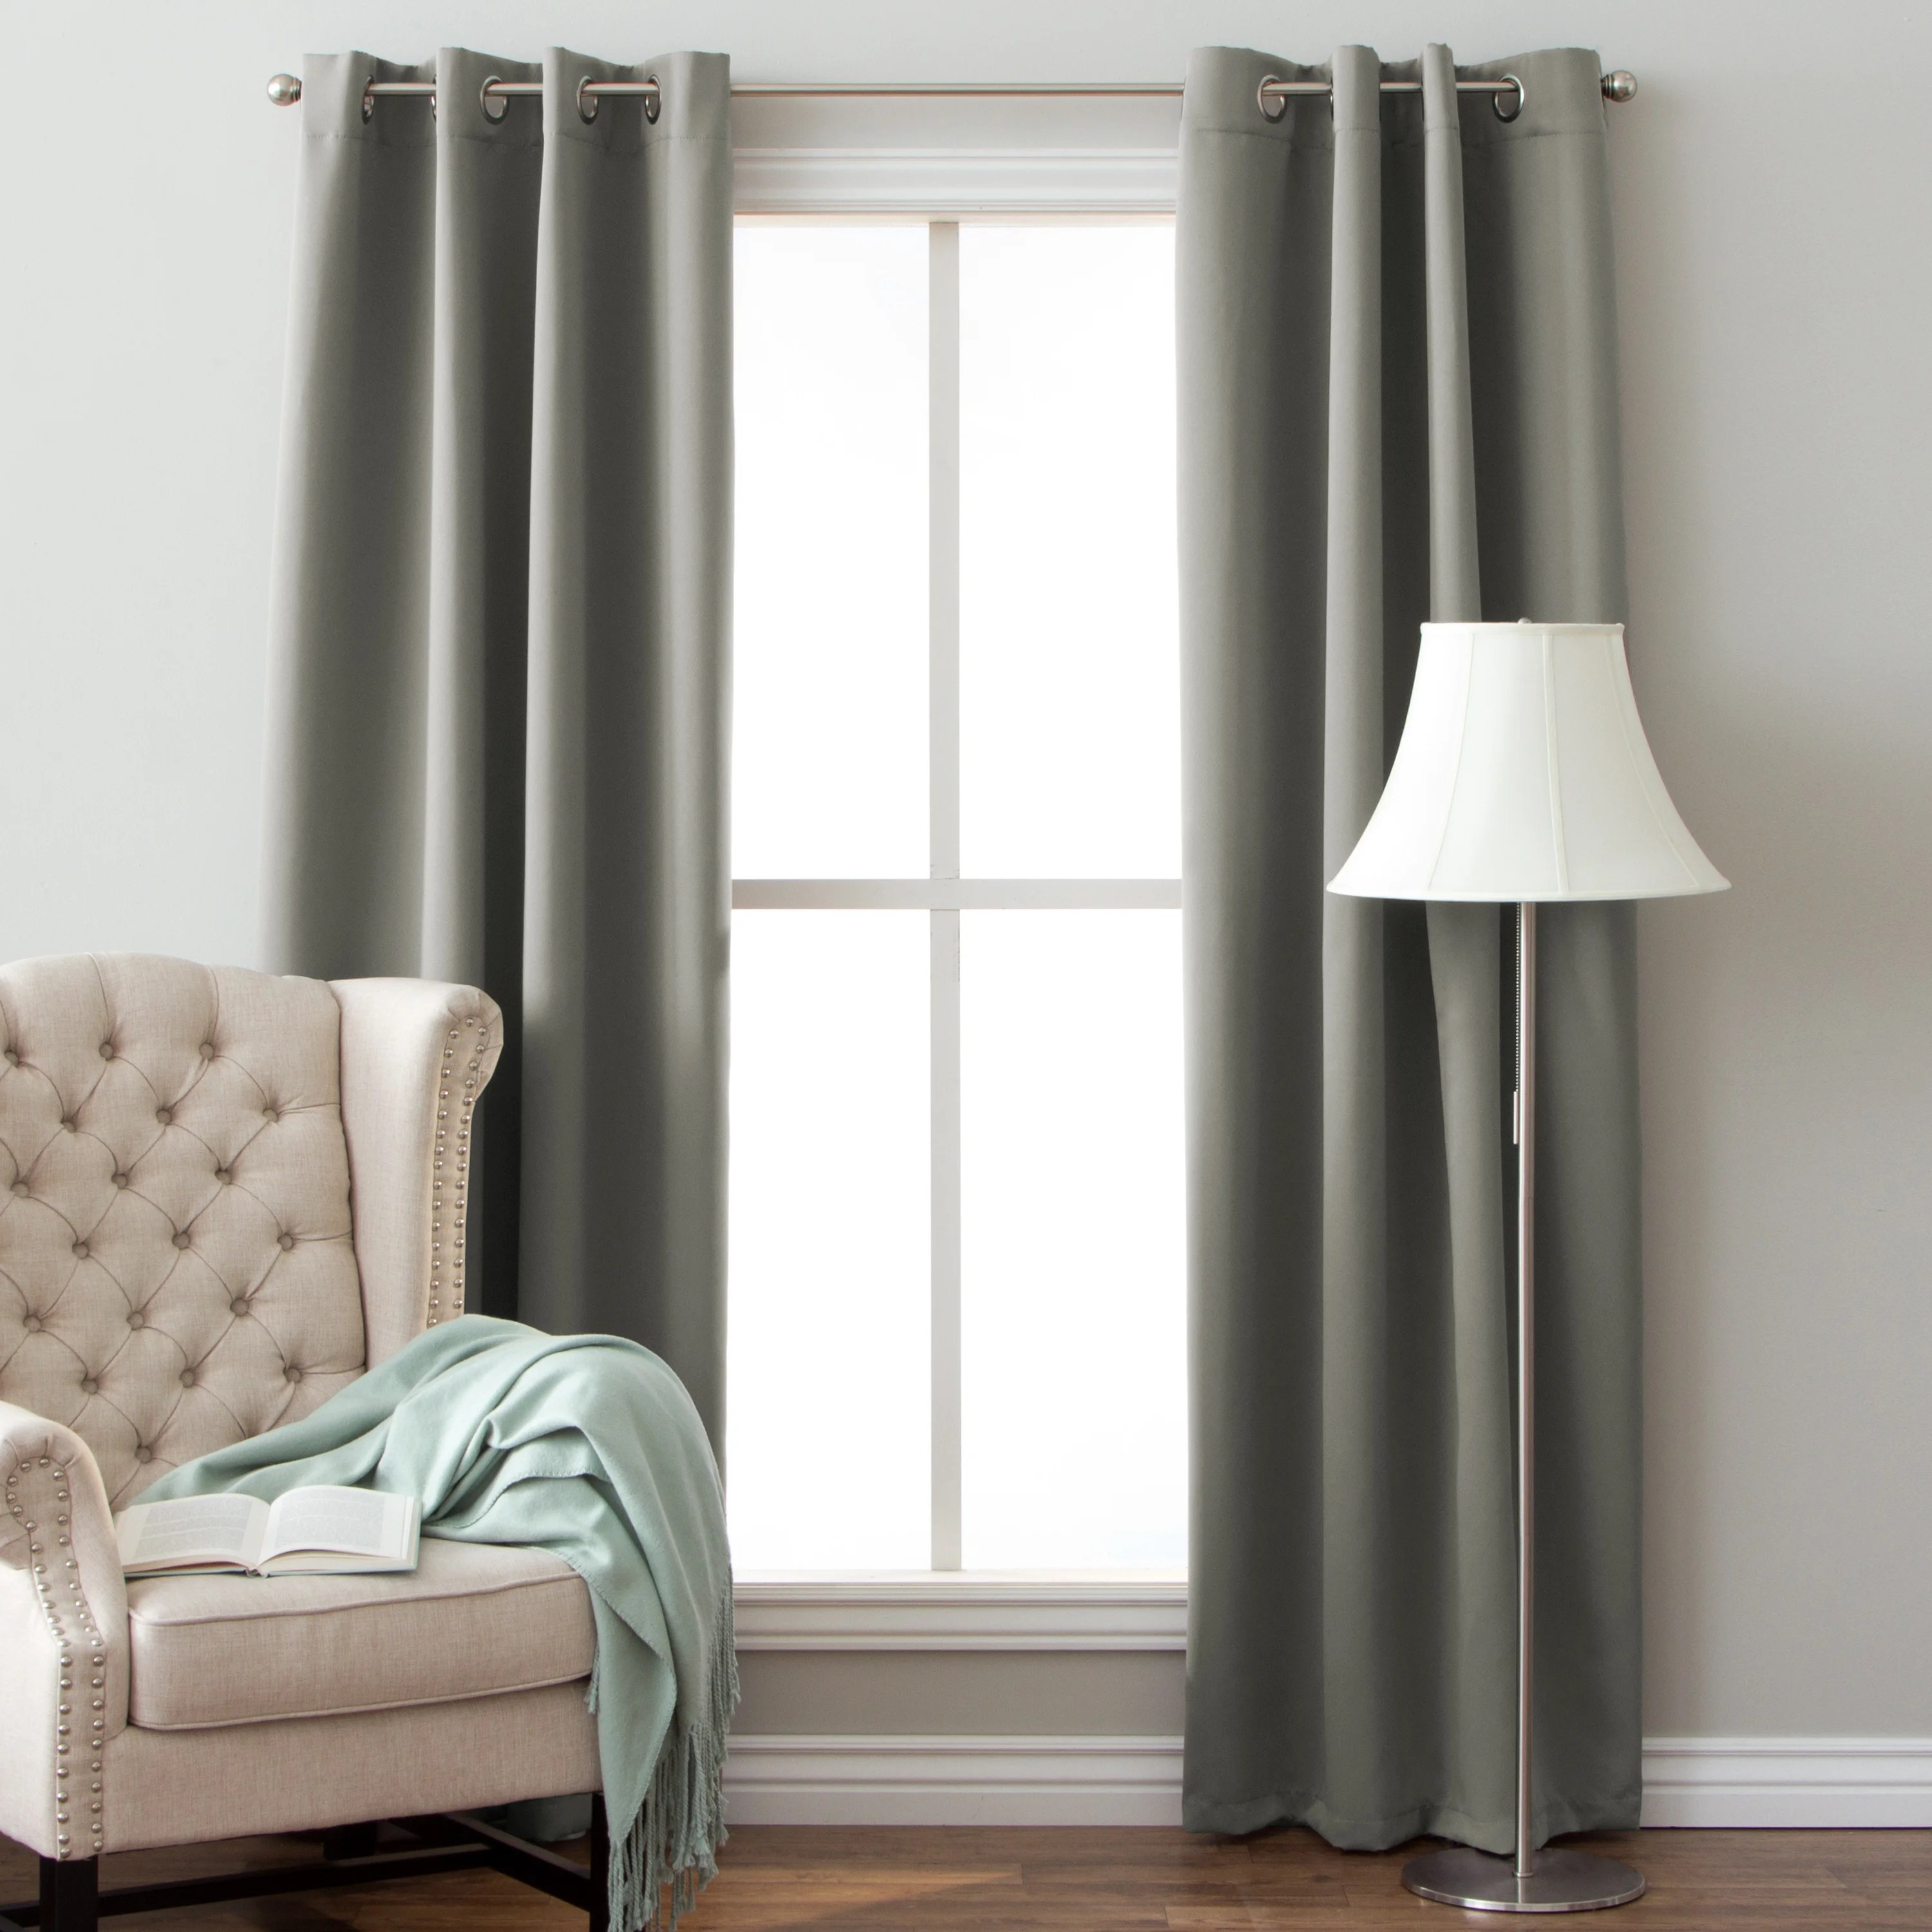 104 Inch Curtains Arlo Blinds Grommet Blackout Curtains 64 Inch Height Panel Pair Total Width 104 Inch